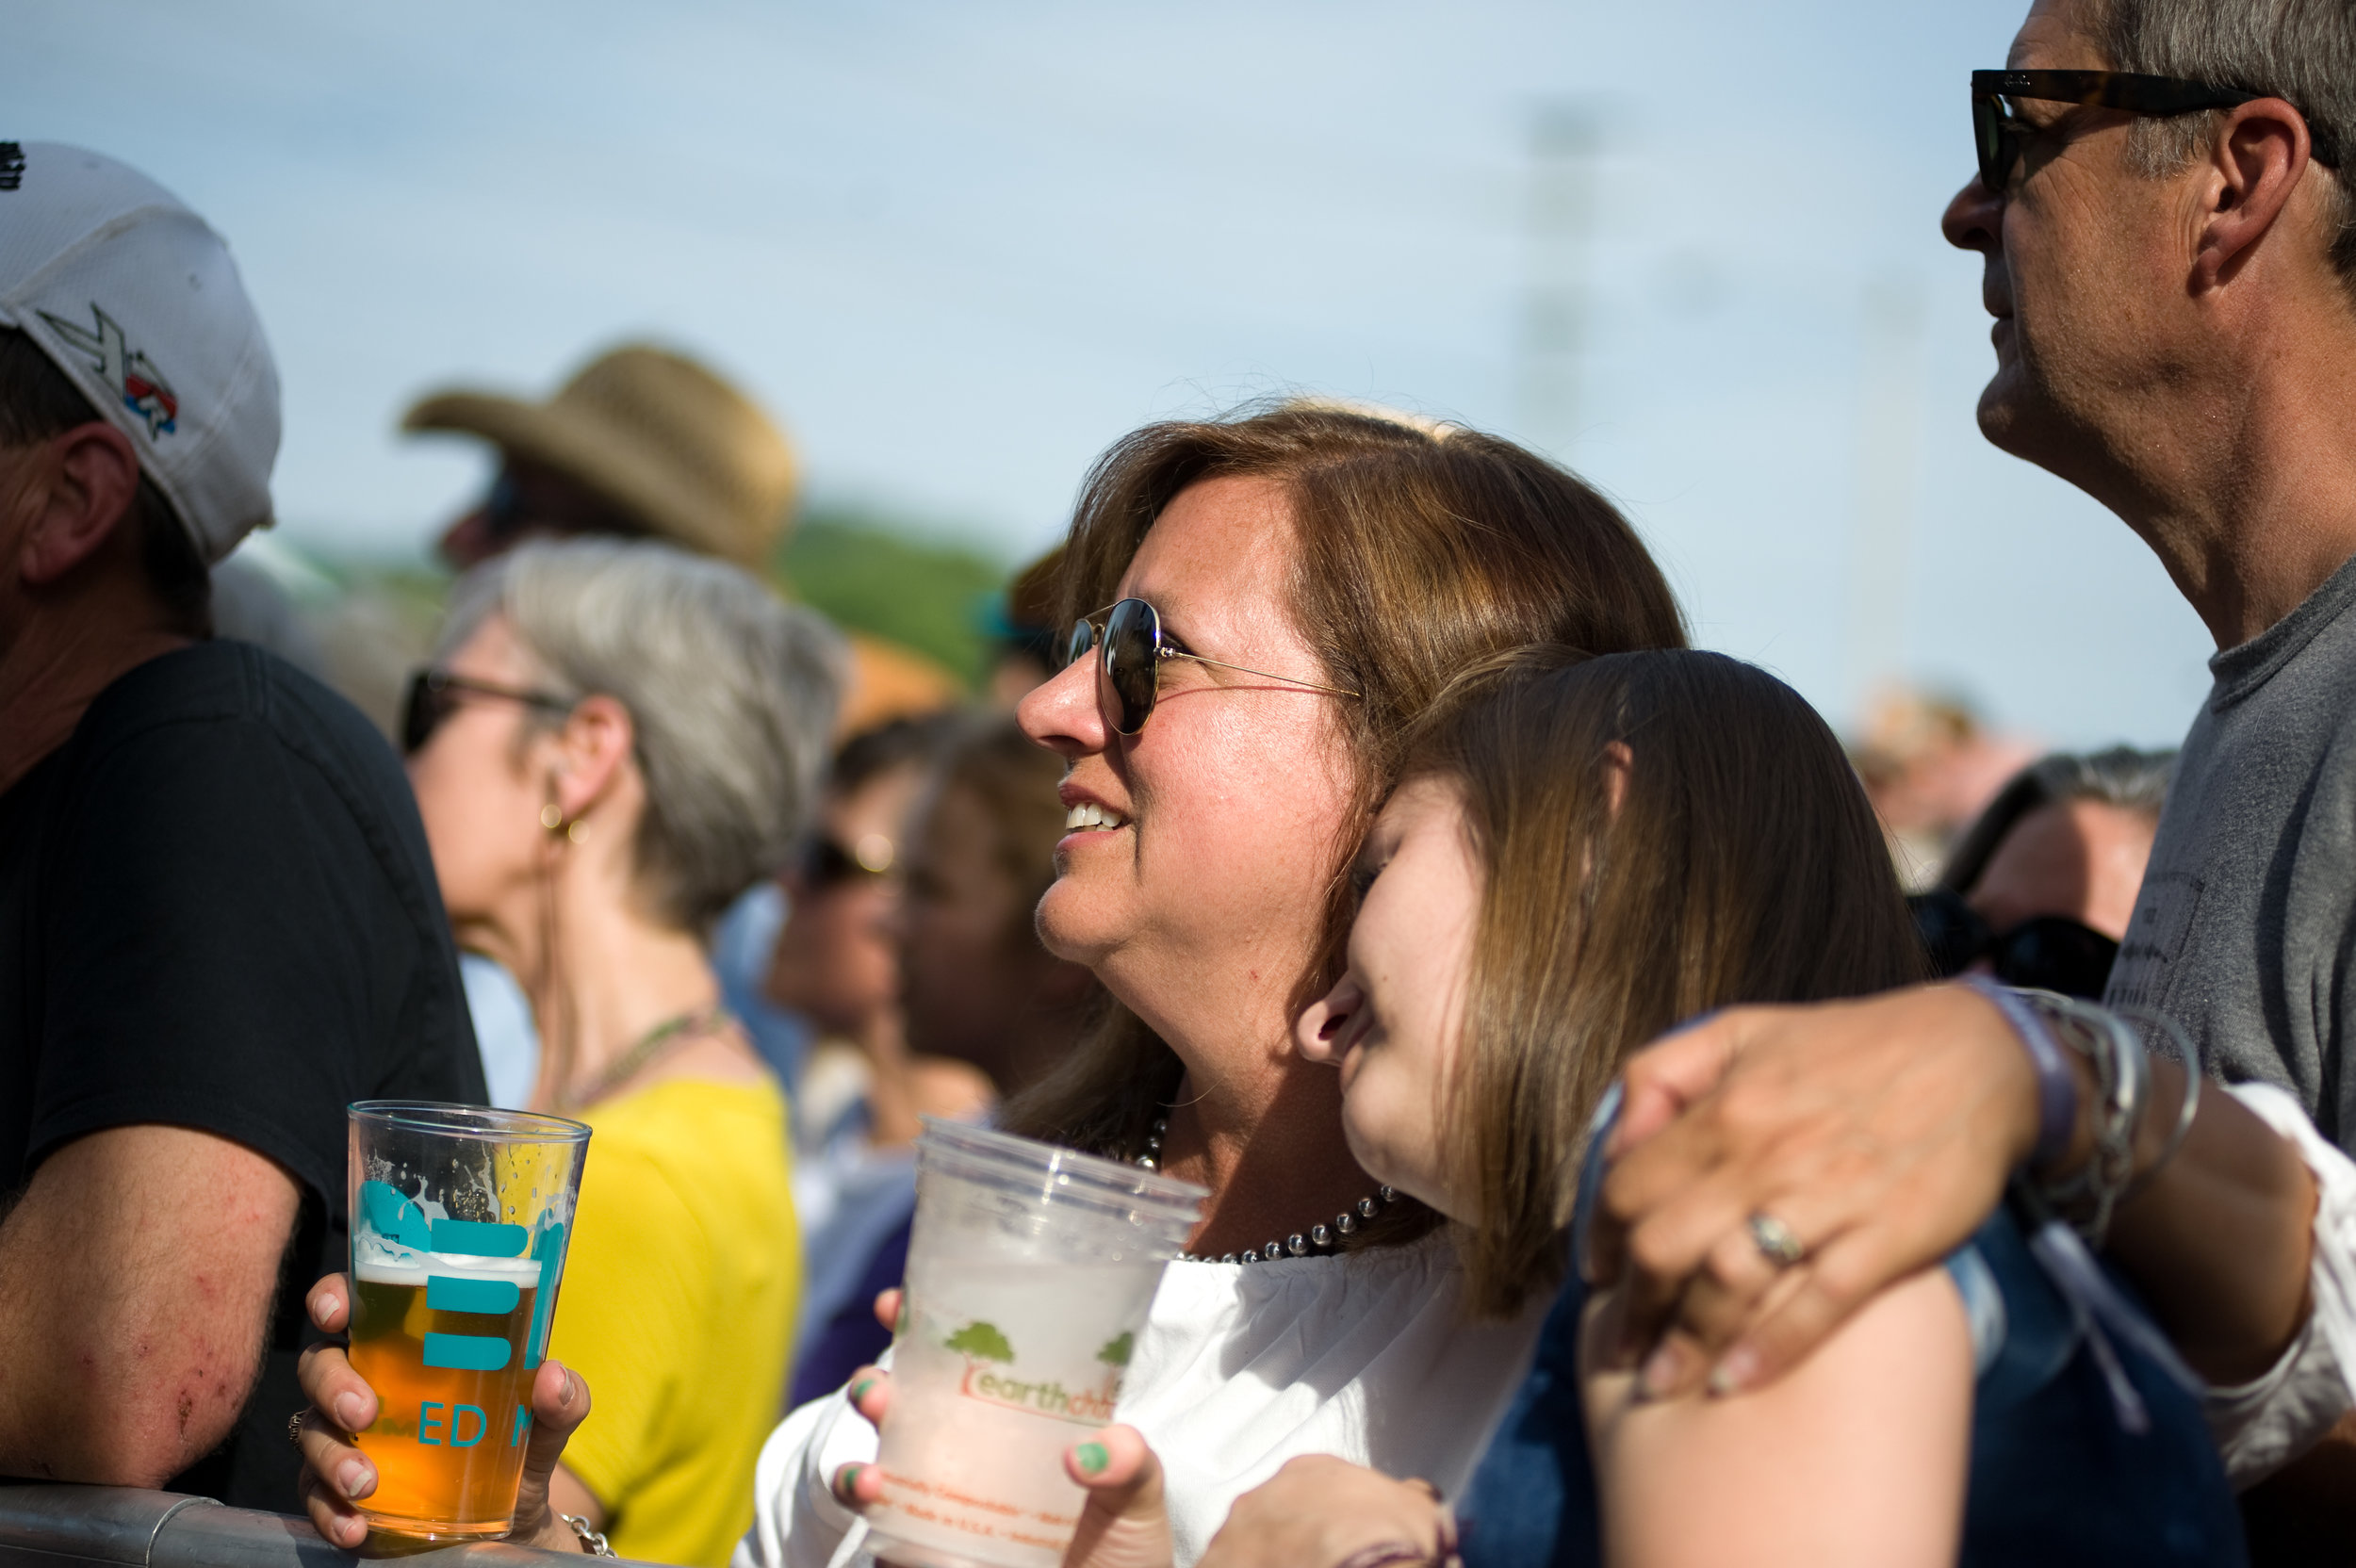 Family comes together over a variety of great music at NMF.